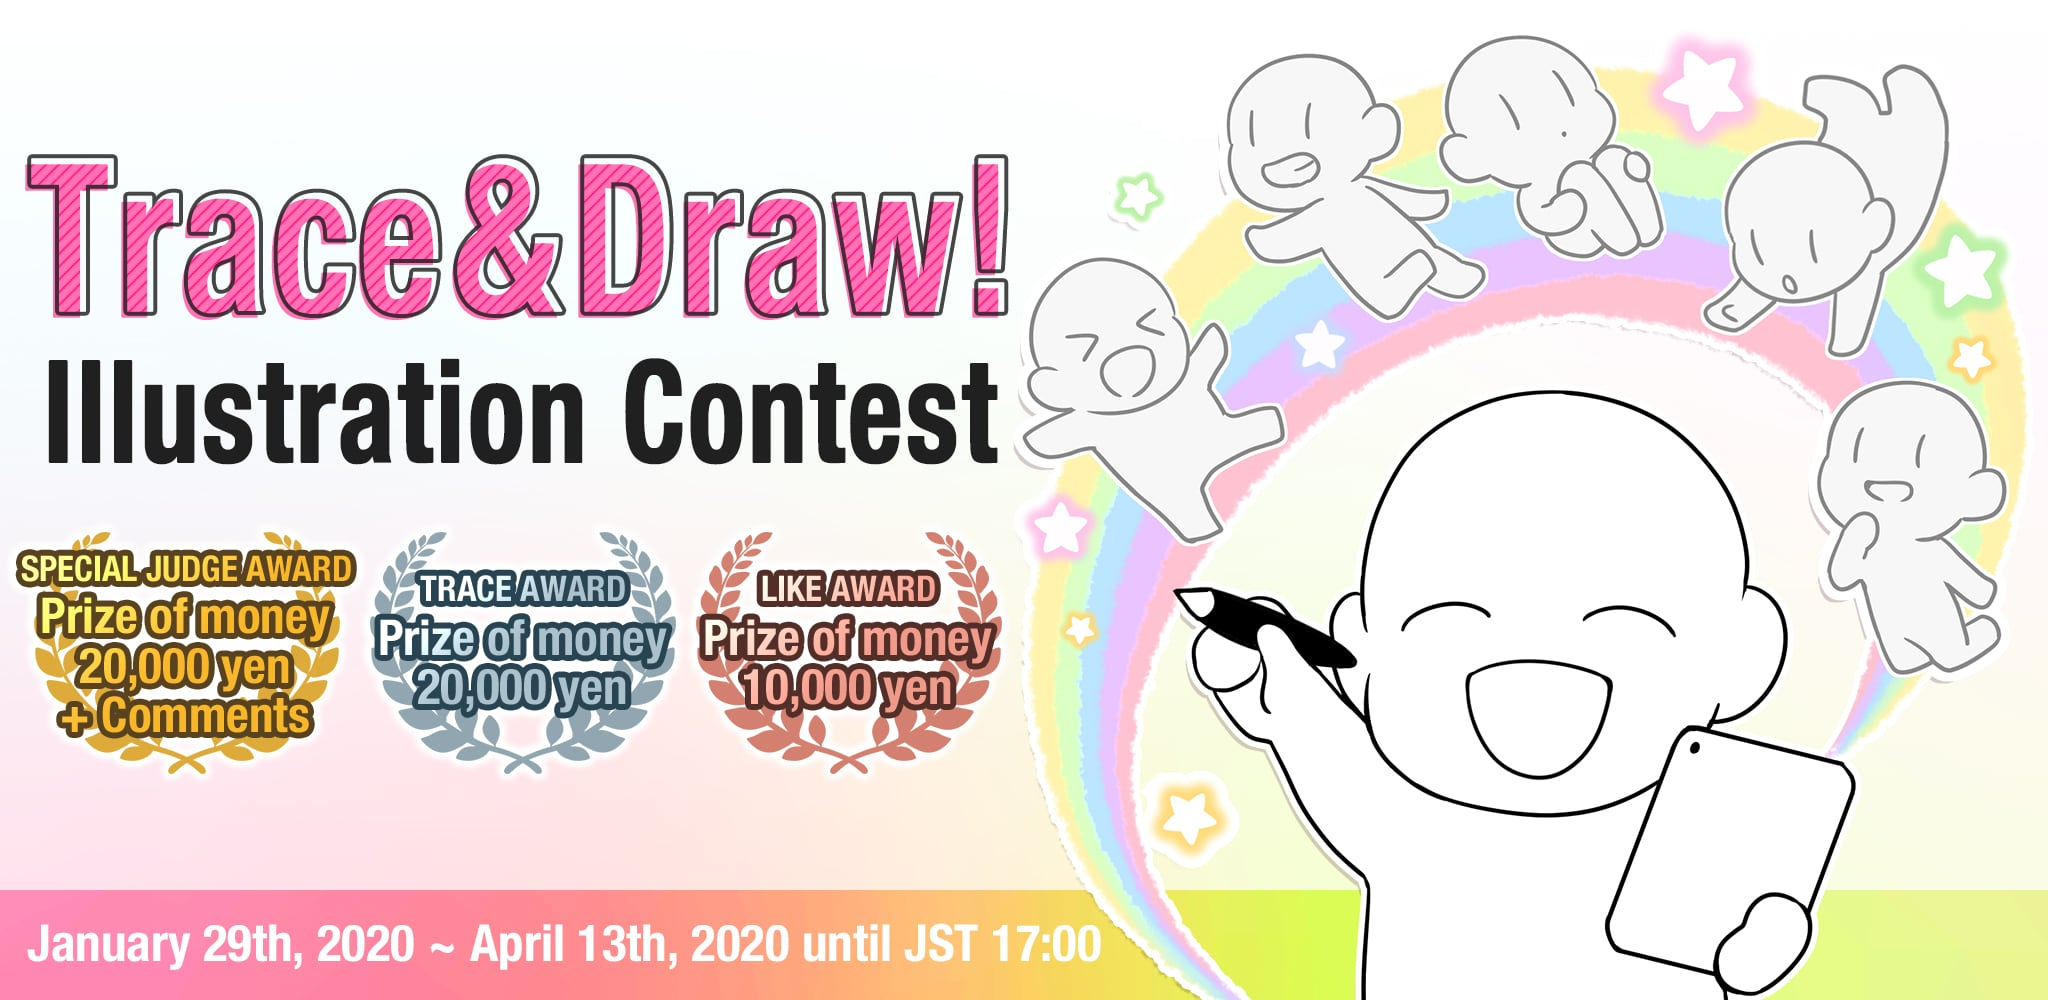 Trace & Draw! Illustration Contest | Contest - ART street by MediBang